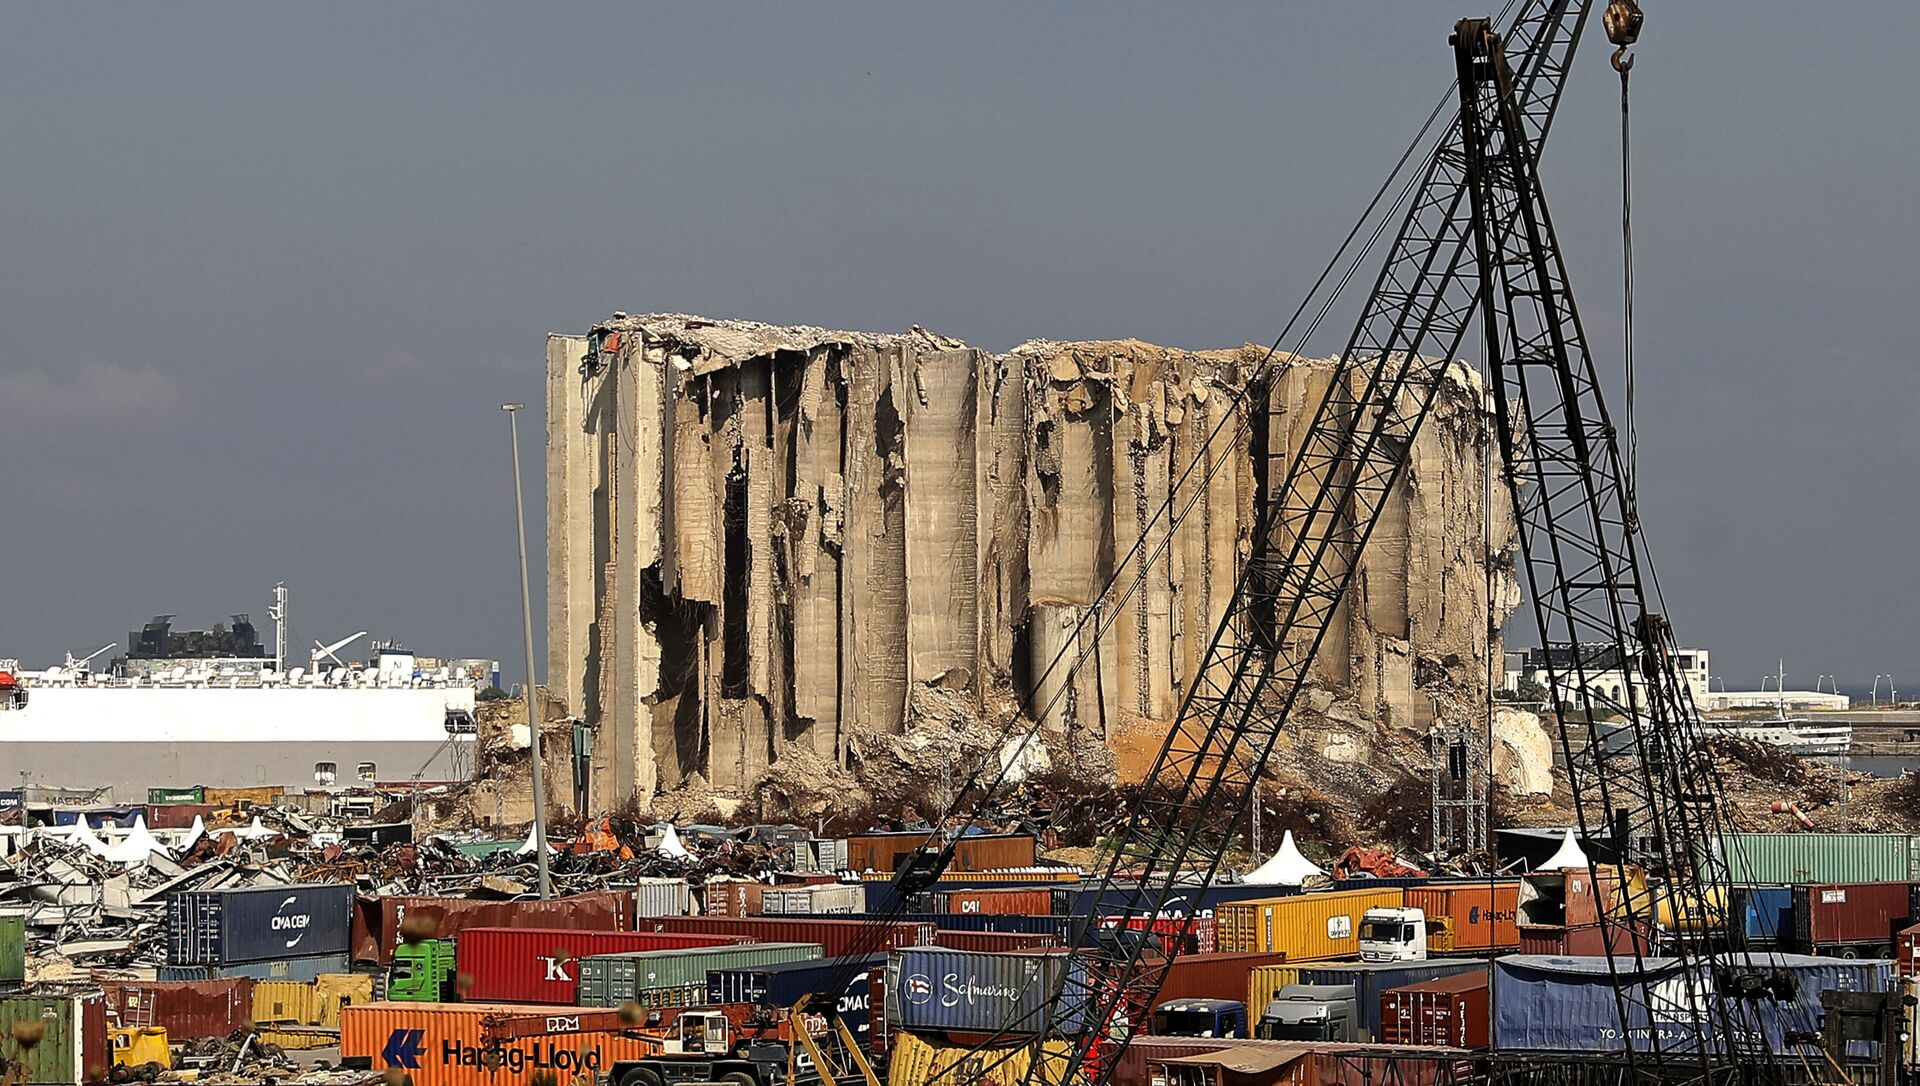 A general view shows the damaged grain silos at the port on 4 August 2021, as Lebanon marks a year since a cataclysmic explosion ravaged the capital Beirut. - Sputnik International, 1920, 04.08.2021